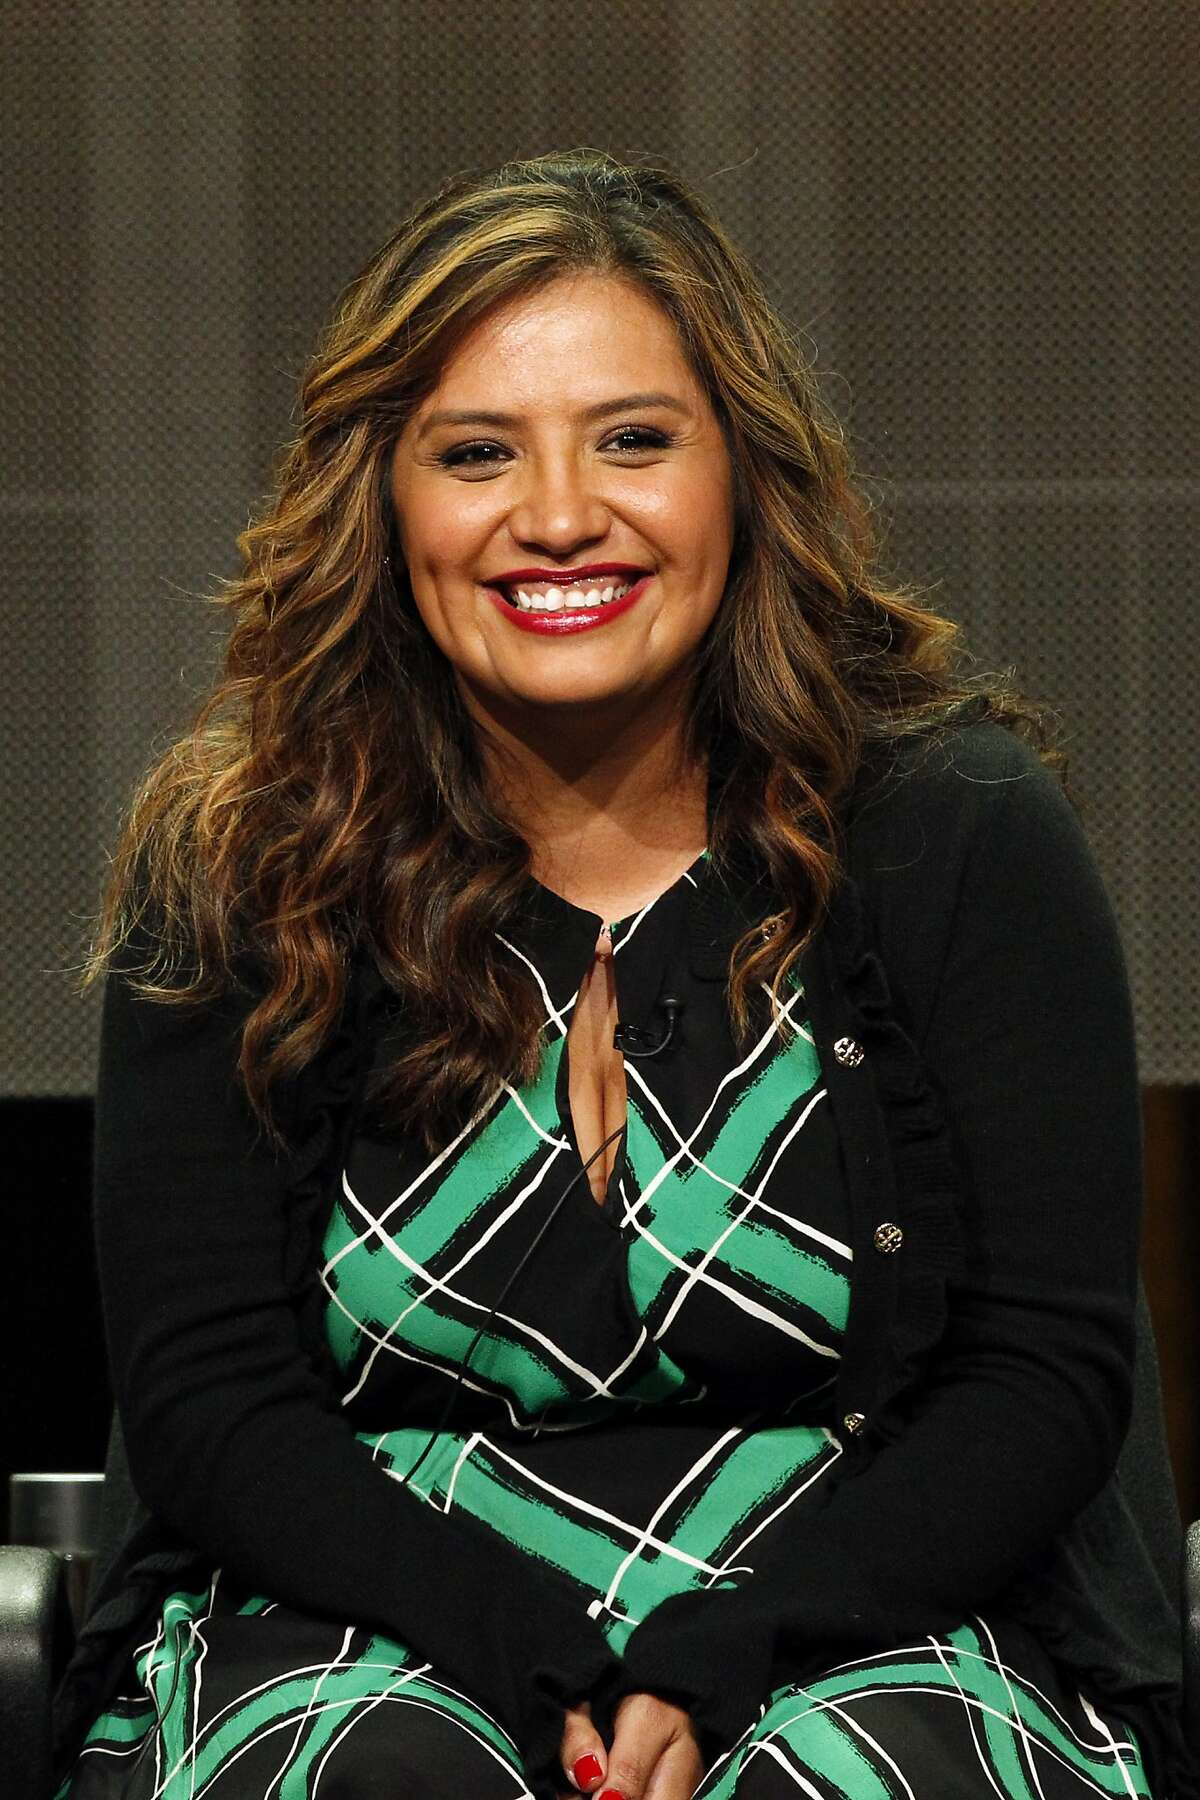 """Cristela Alonzoduring a session on her TV sitcom """"Cristela"""" in 2014. The Texan comedian will perform at the Laugh Out Loud Comedy Club in San Antonio this August."""